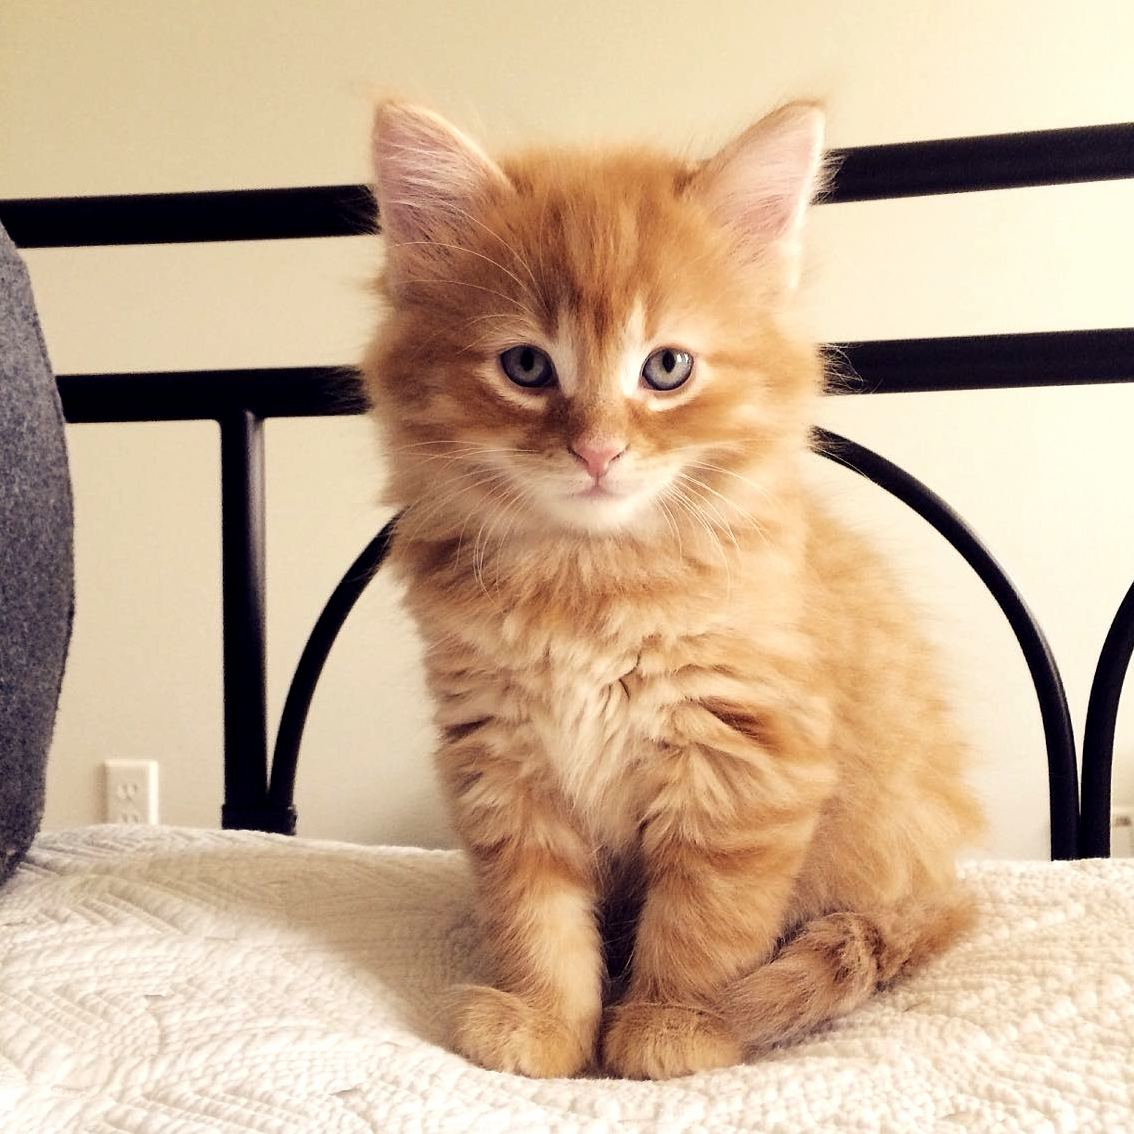 Cute Cats HQ Free Pictures Of Funny Cats And